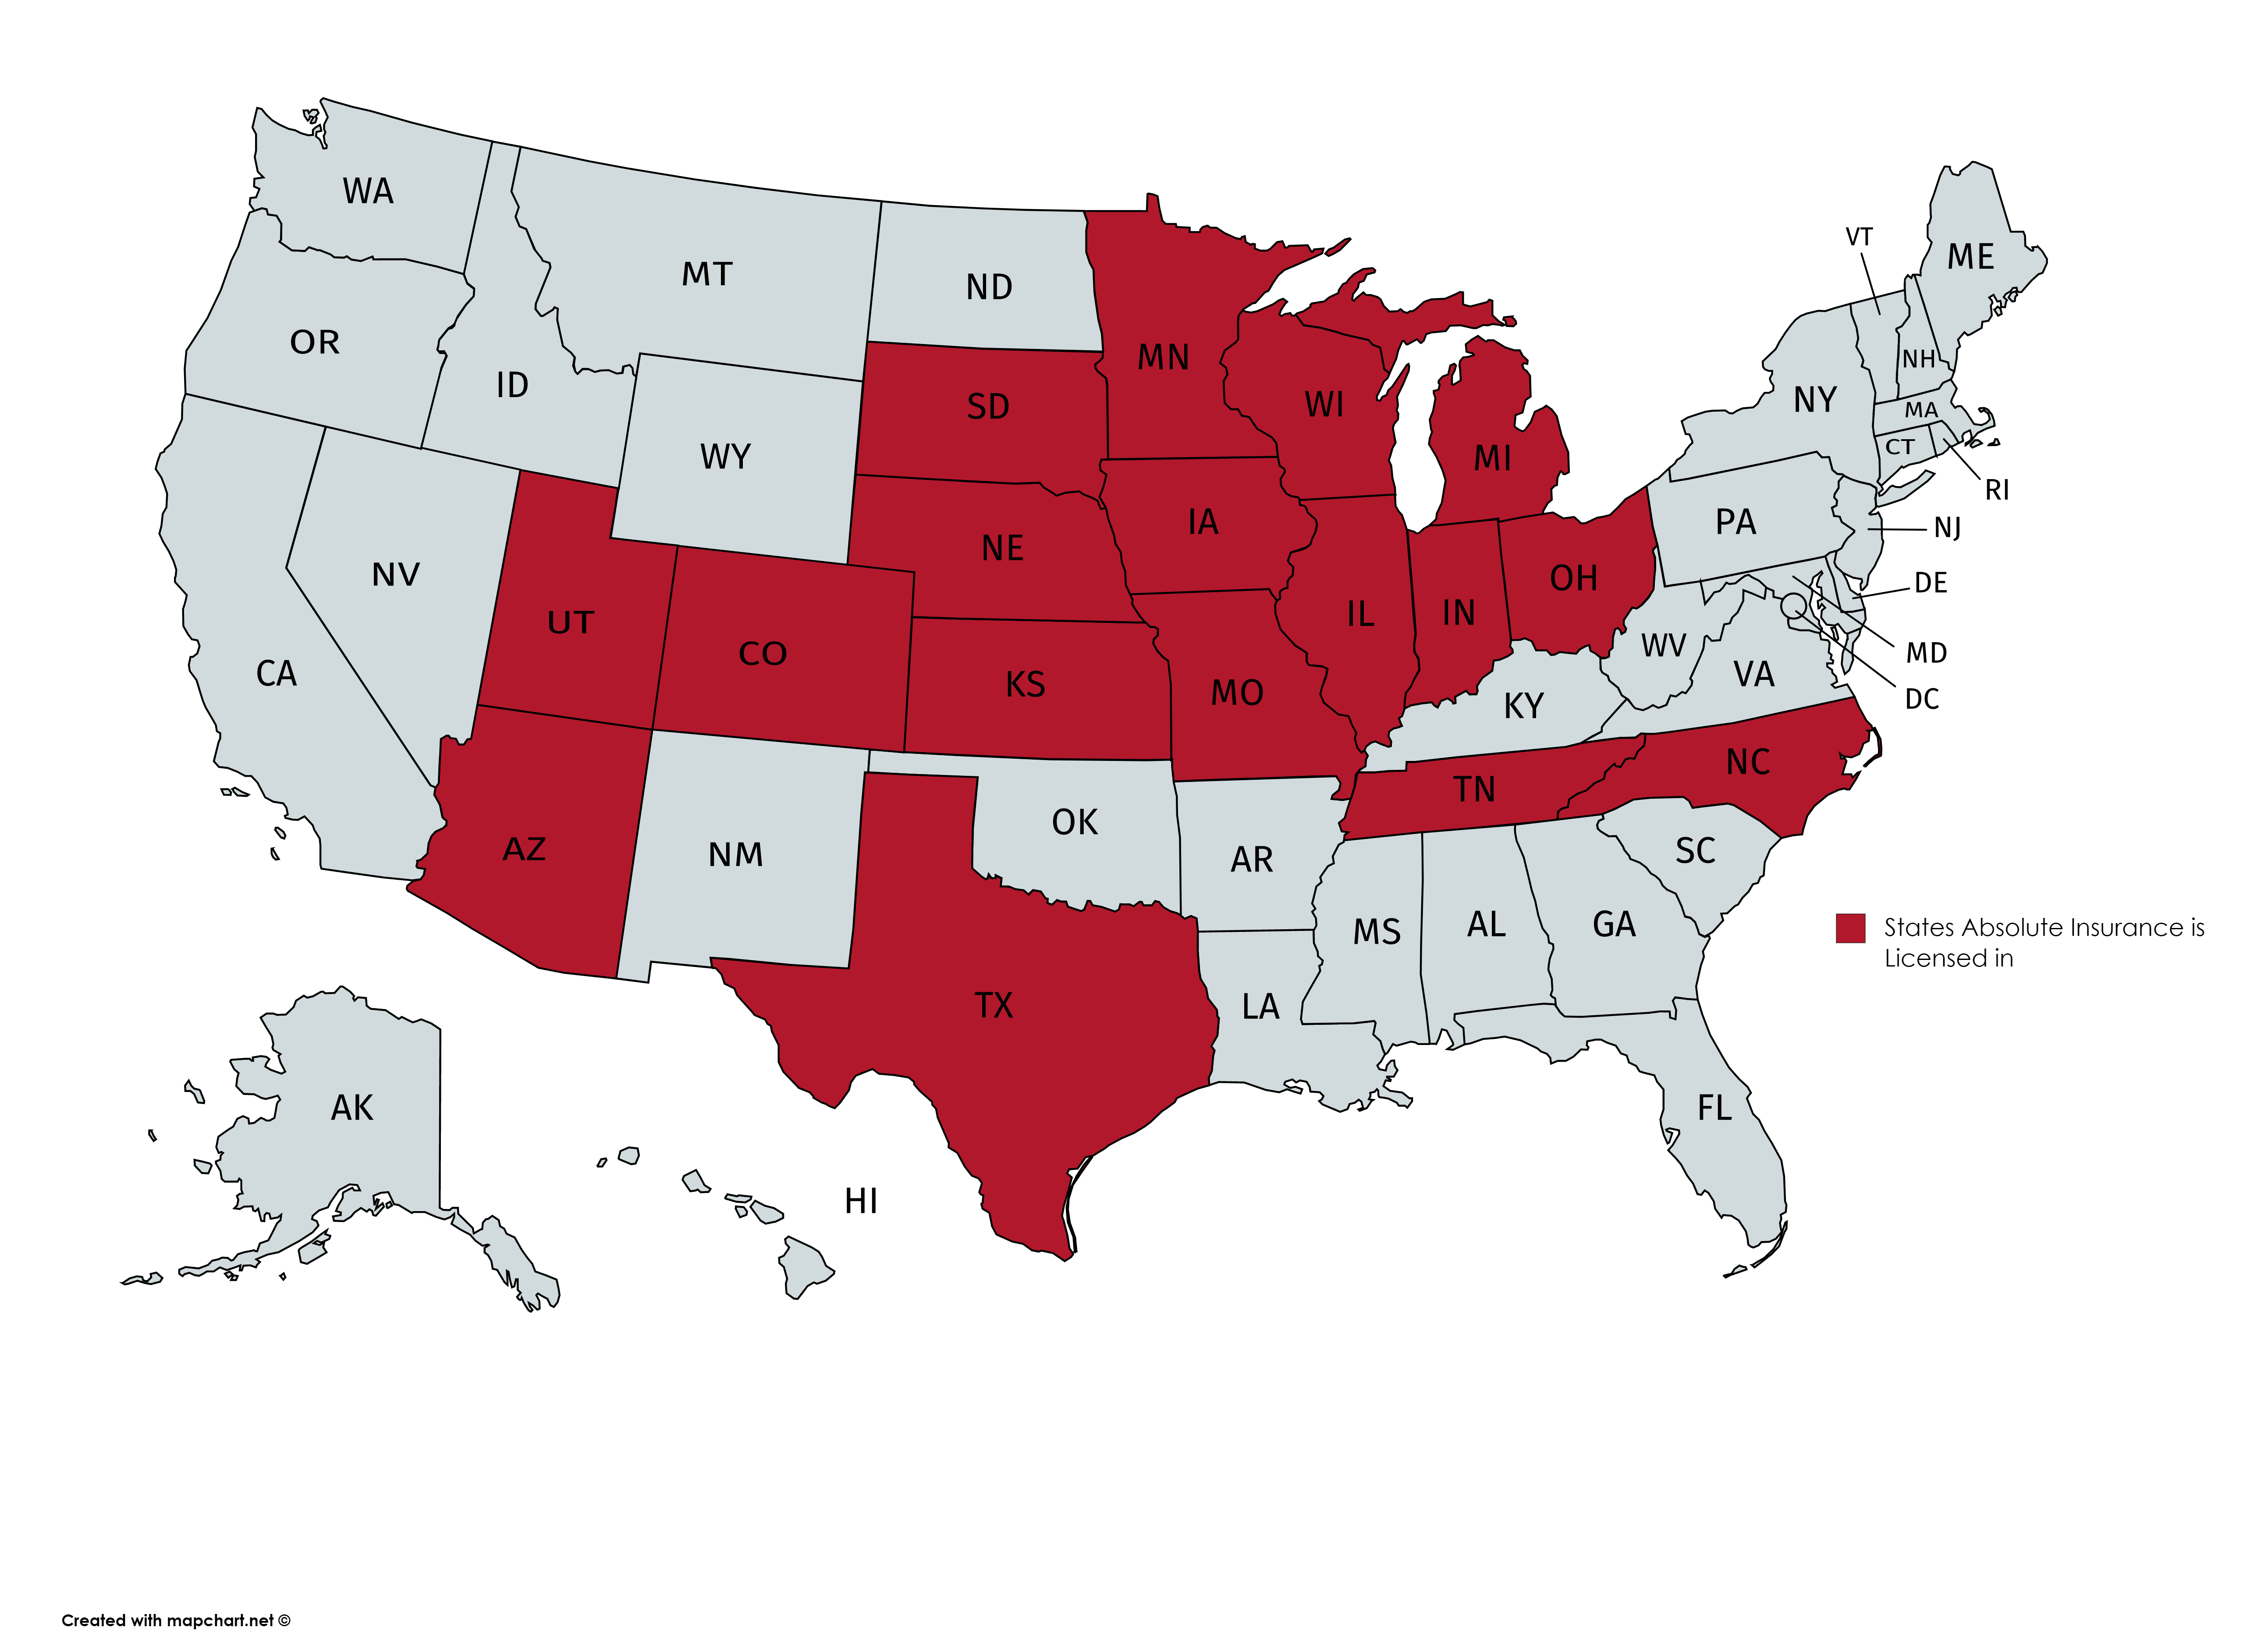 Map showing 17 states Absolute Insurance is licensed in